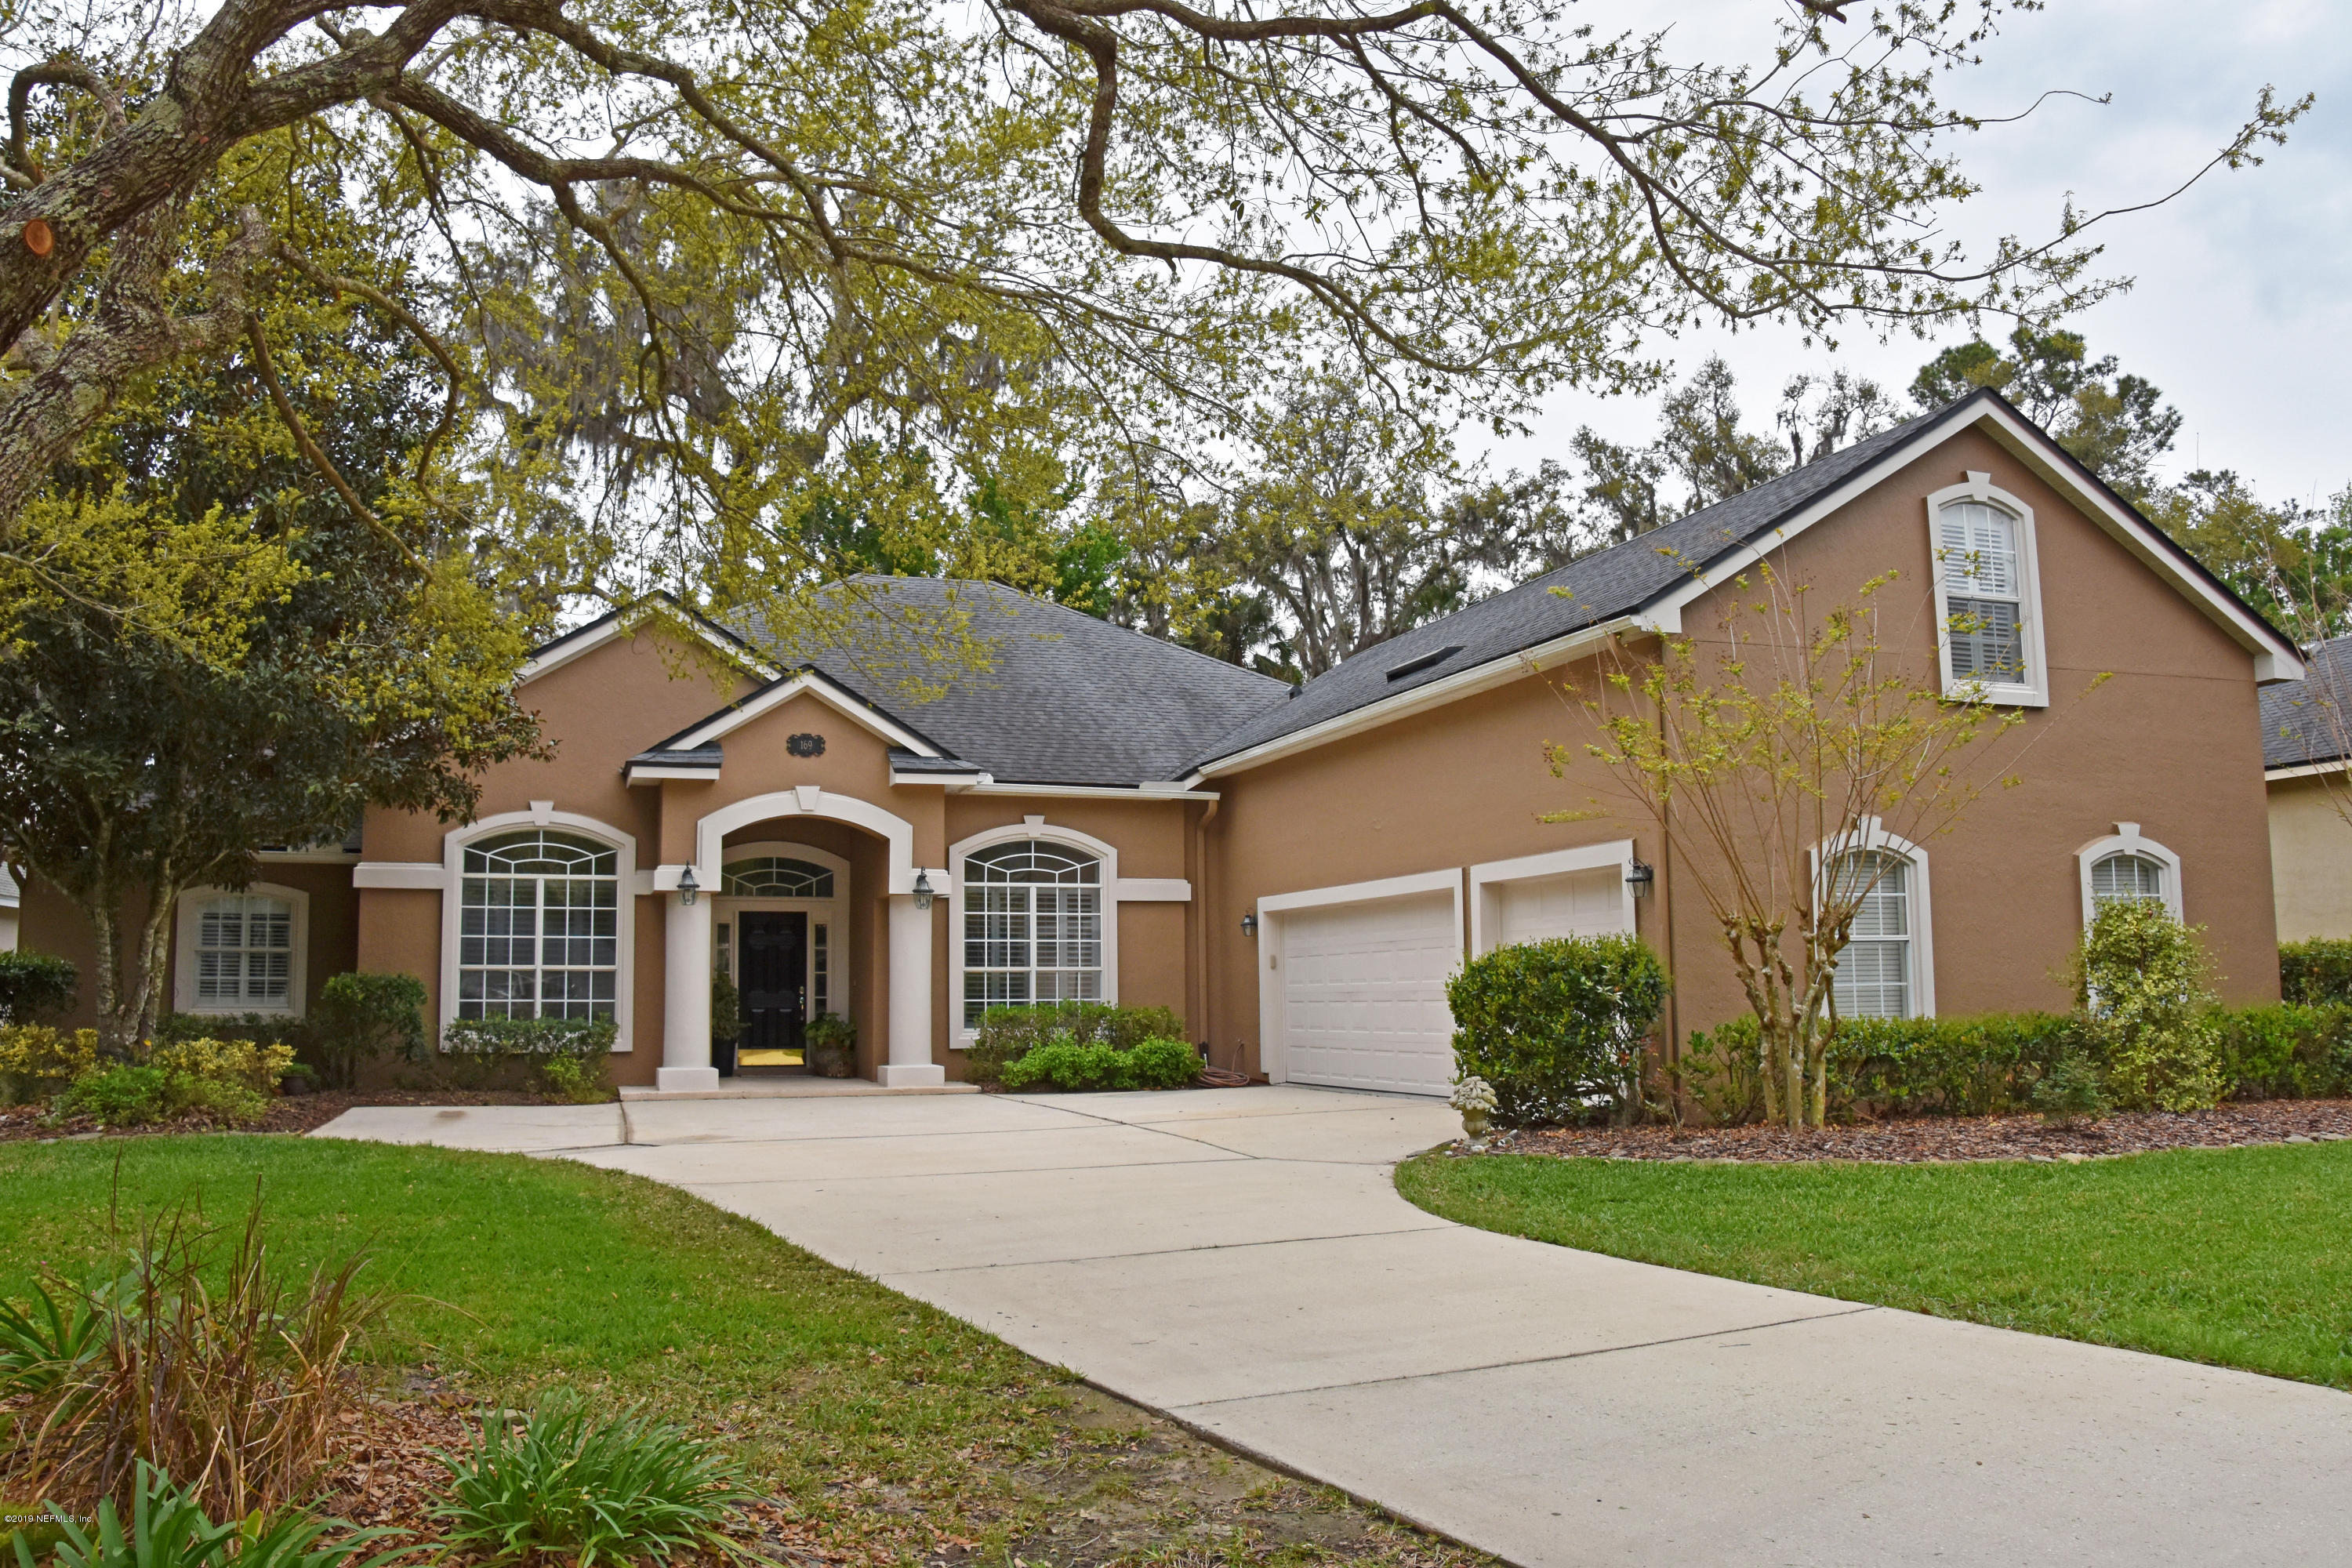 169 SAWMILL LAKES, PONTE VEDRA BEACH, FLORIDA 32082, 6 Bedrooms Bedrooms, ,5 BathroomsBathrooms,Residential - single family,For sale,SAWMILL LAKES,985402